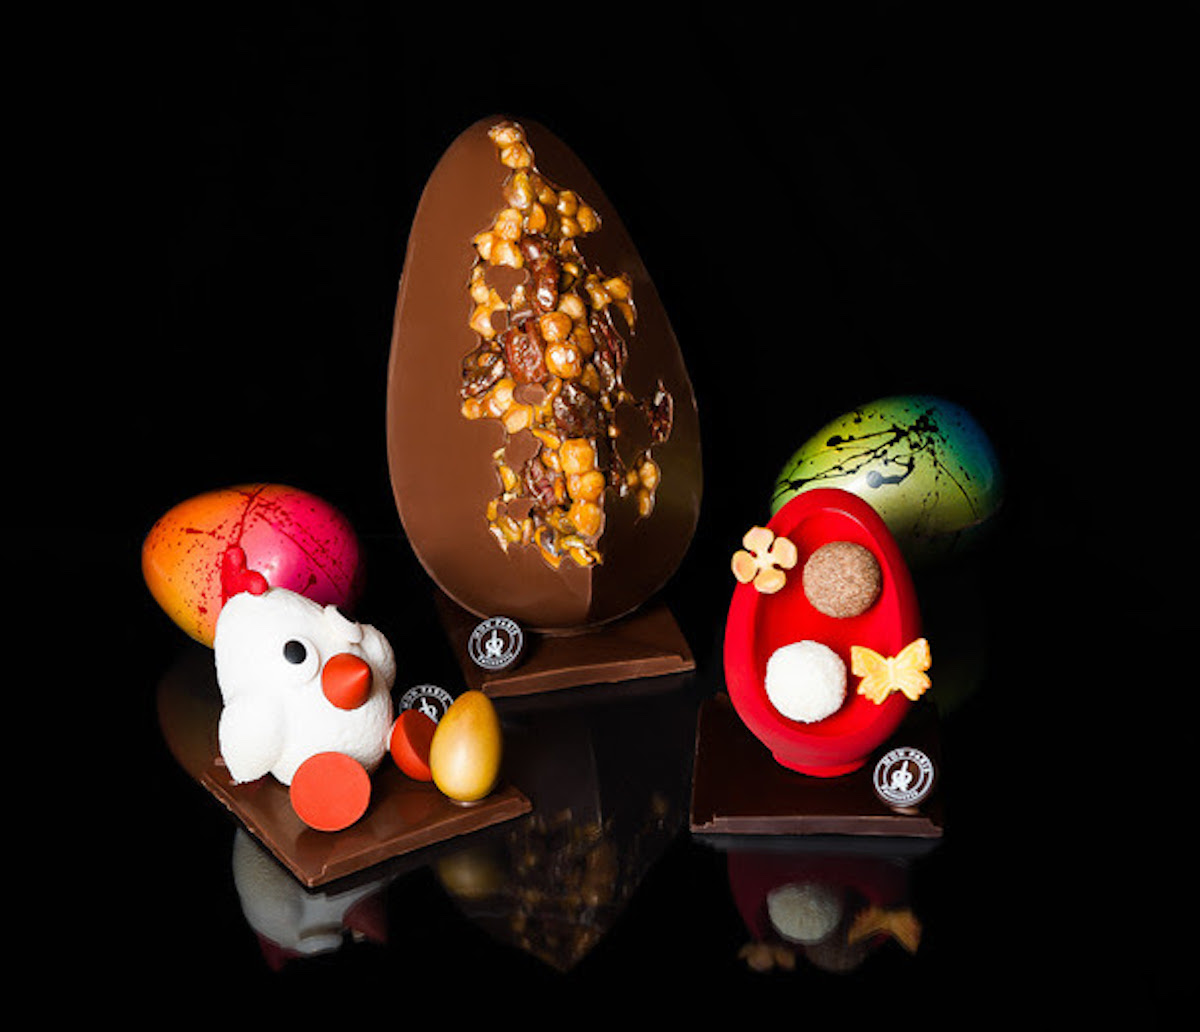 Exquisite Easter eggs found at Burnaby's Mon Paris